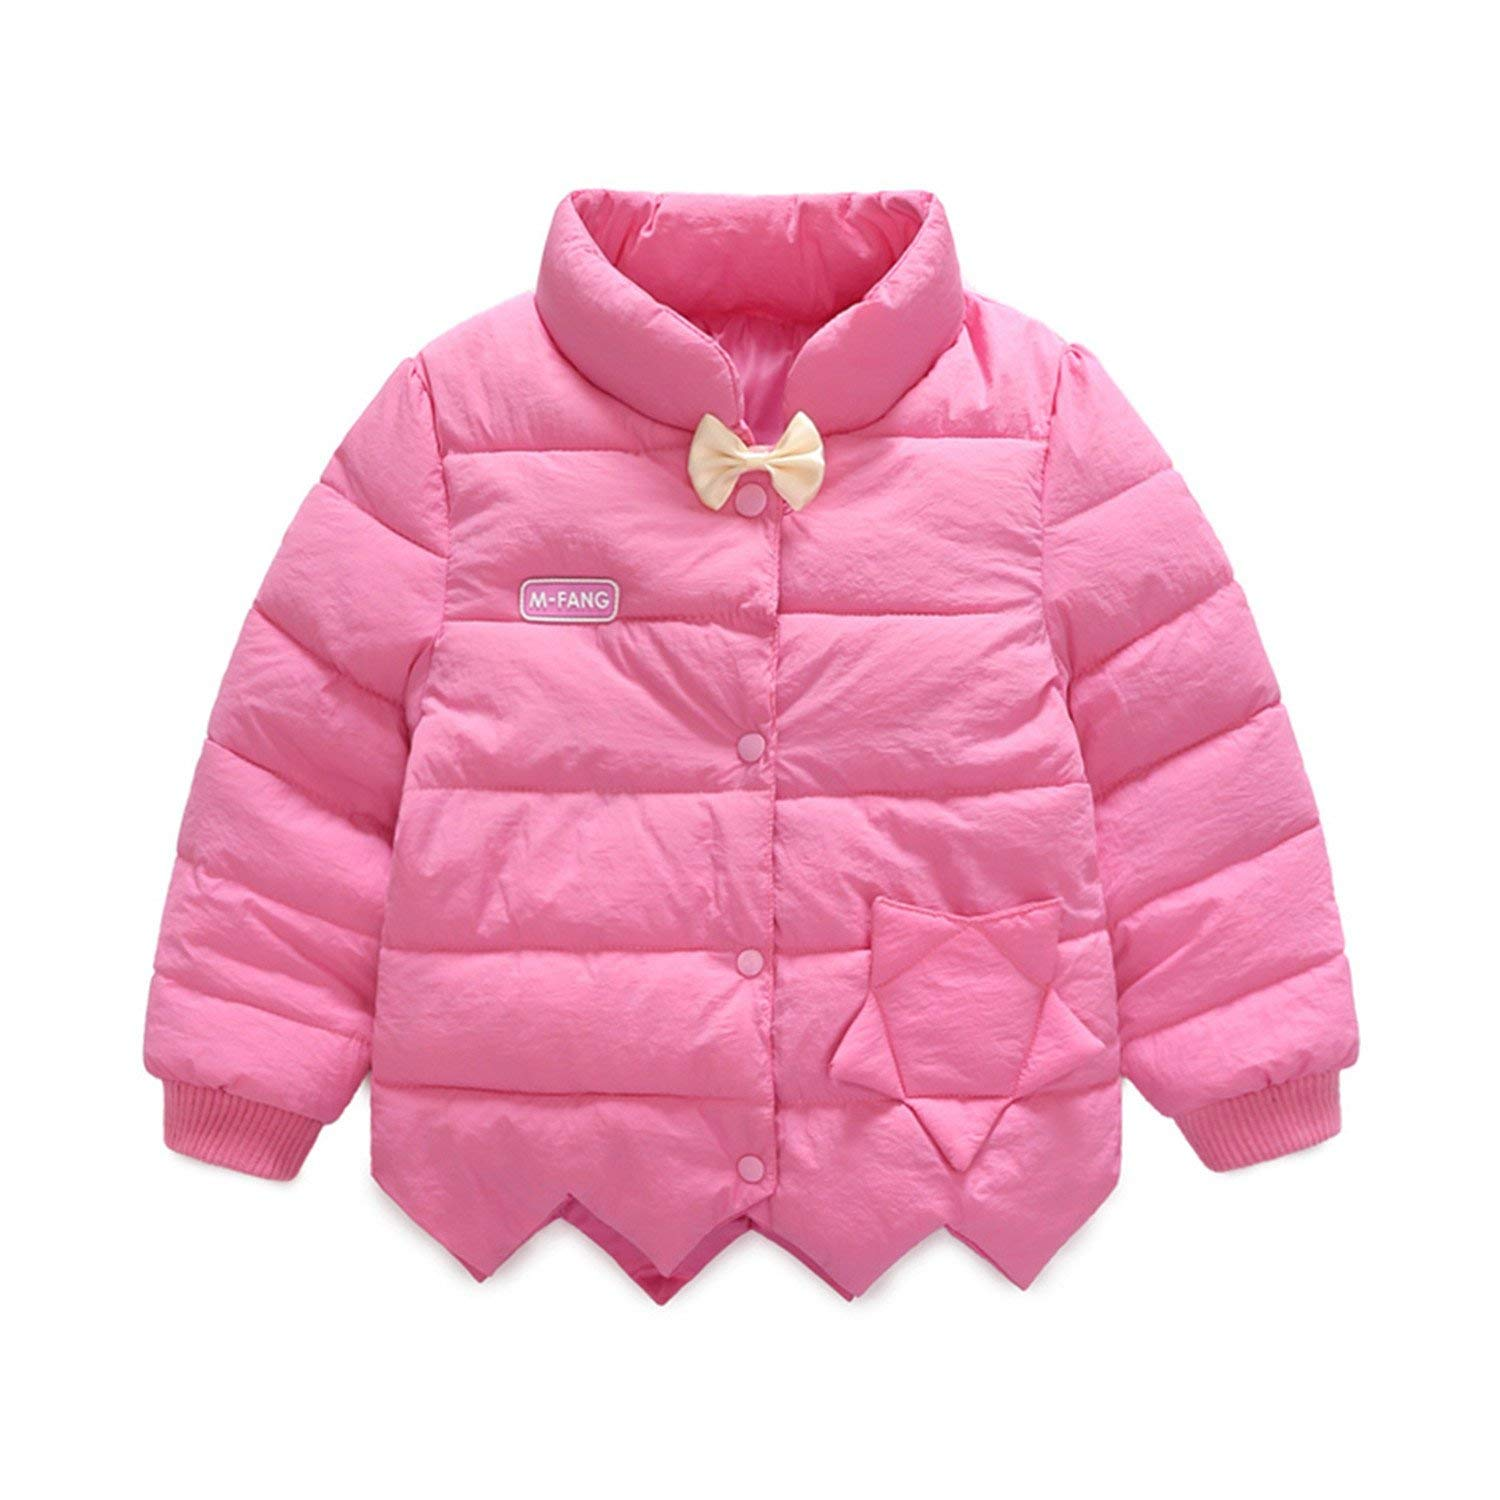 a1361efe3 Get Quotations · Samuel Roussel Infant Girls Coats New Autumn Winter Jacket  Warm Outerwear Children Clothes